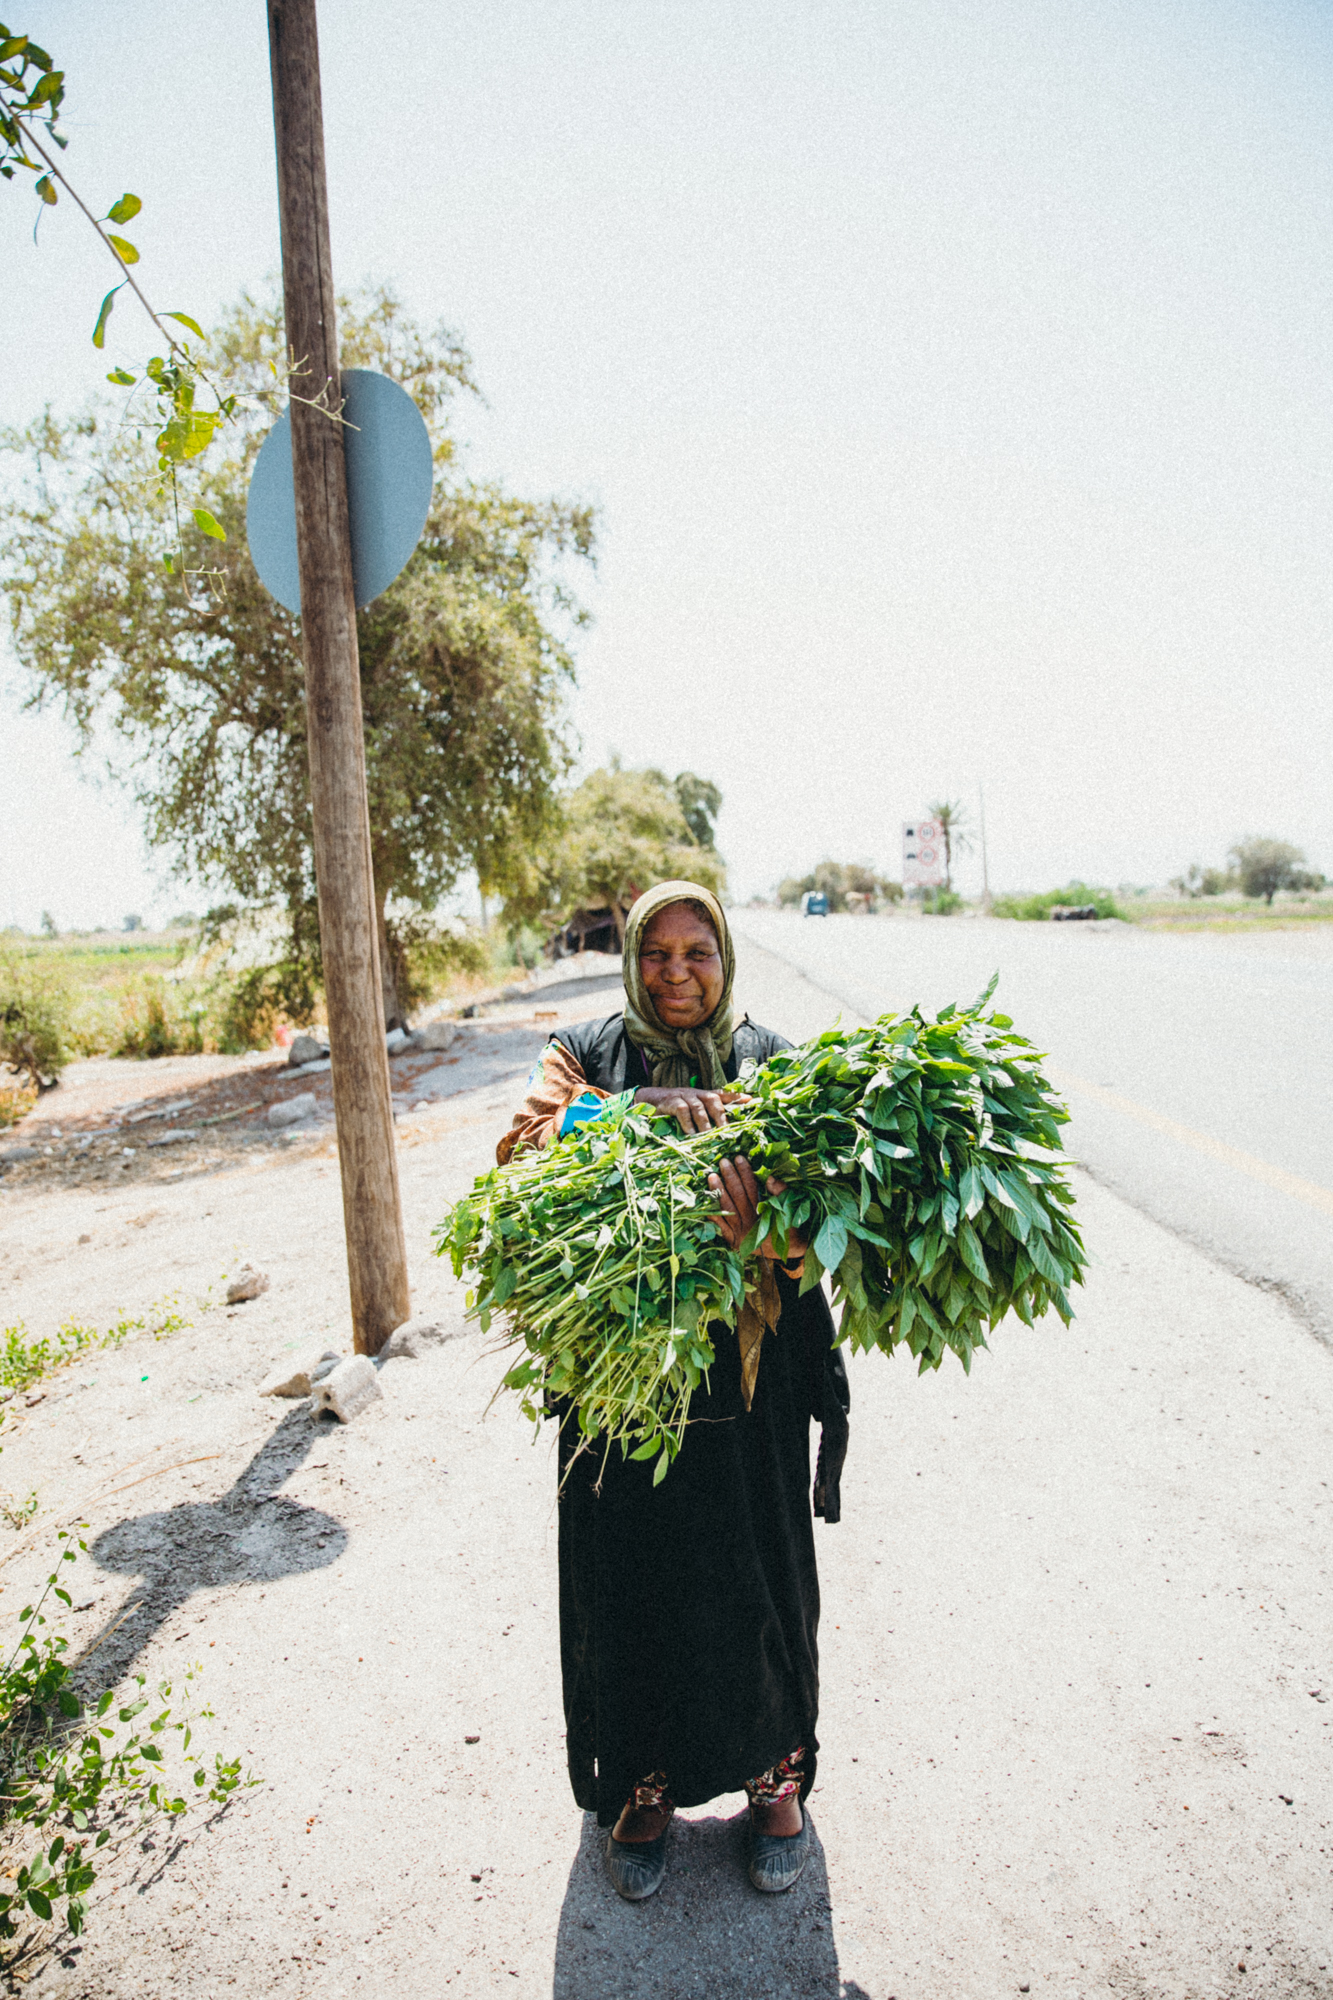 A Bedouin woman on the road stopped and told us her story for a bit. She is a widow, had a stroke a few months back, and has no money.